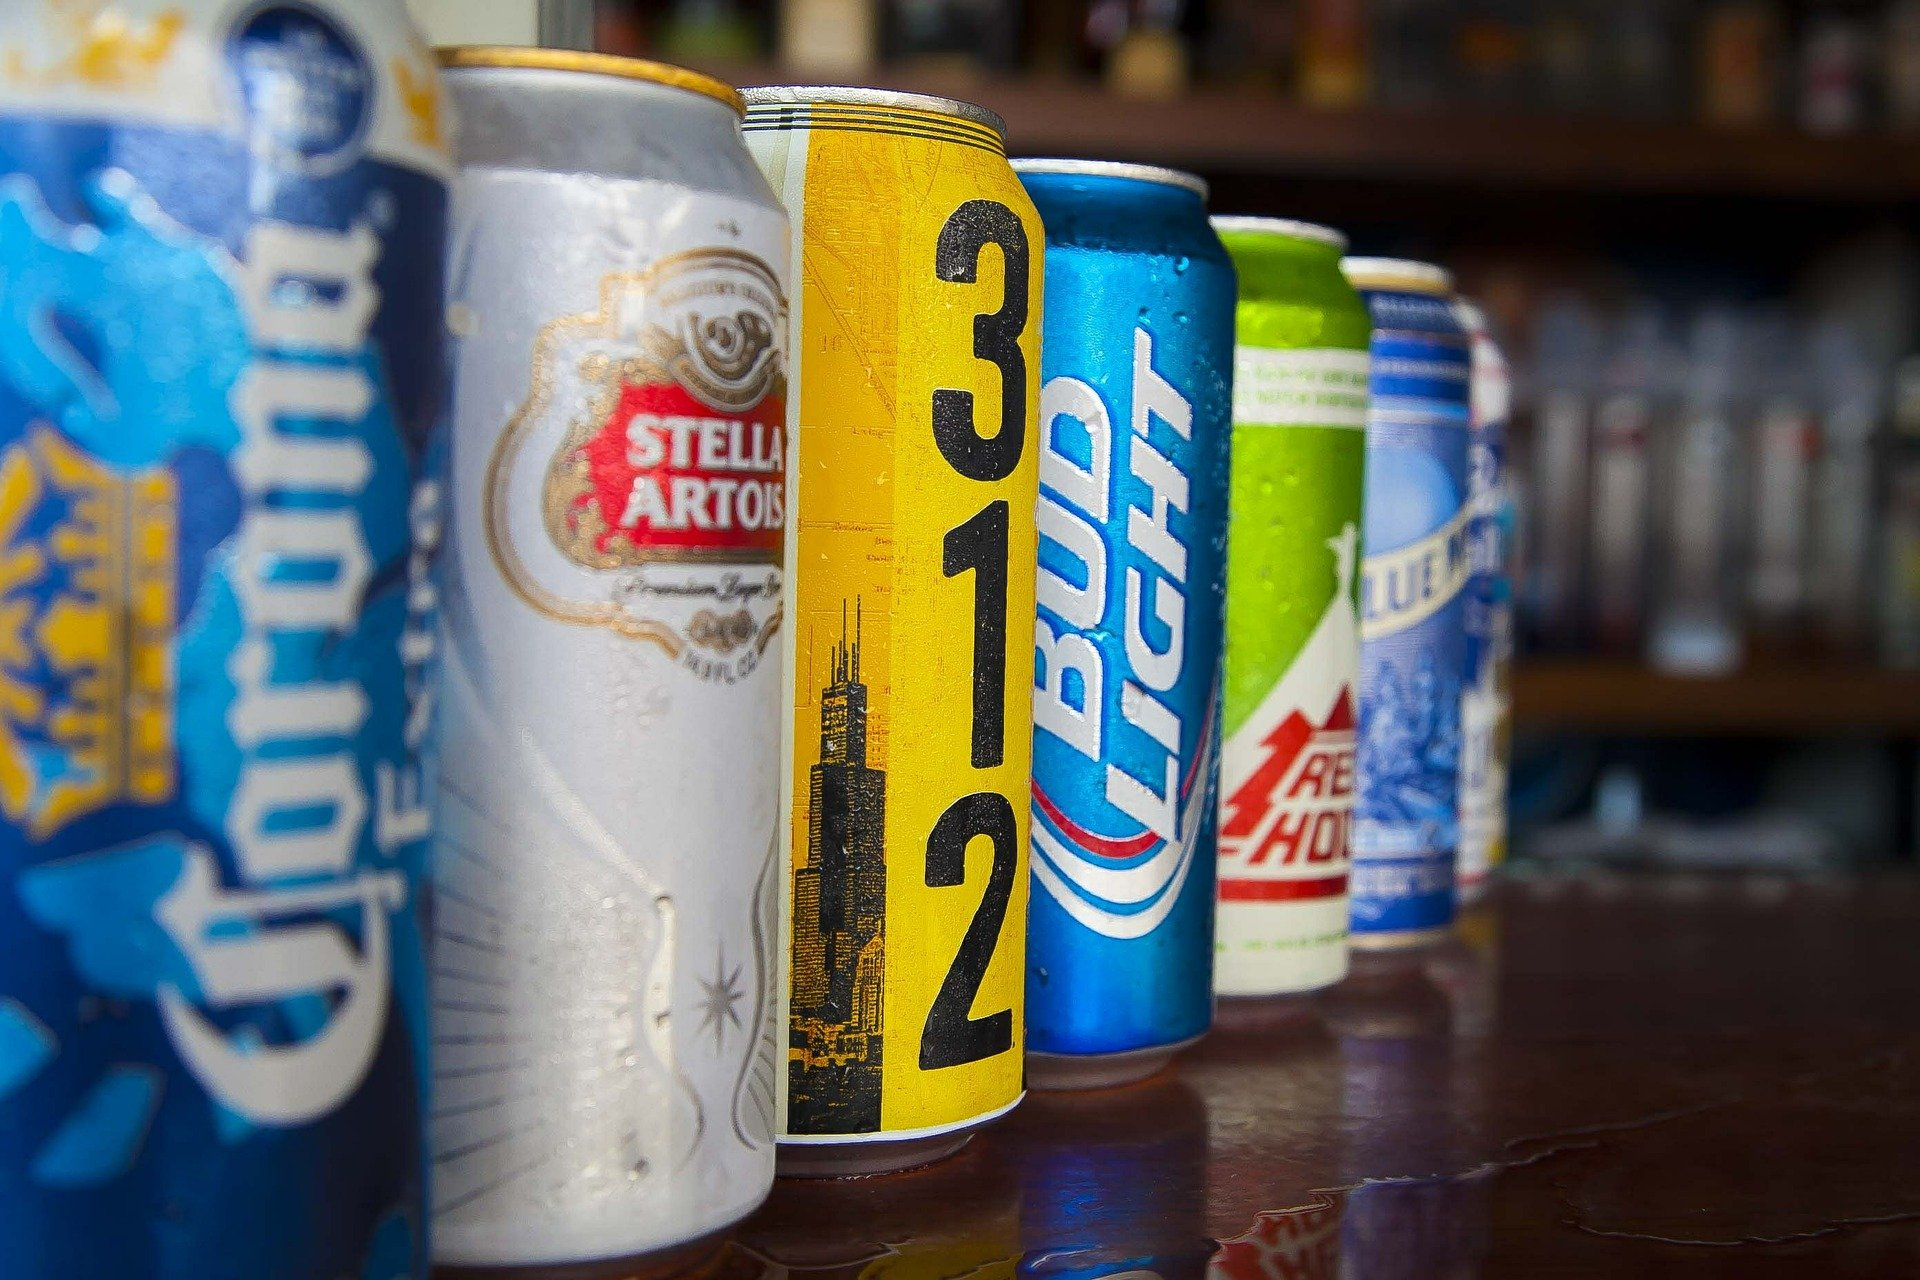 cans-526011_1920